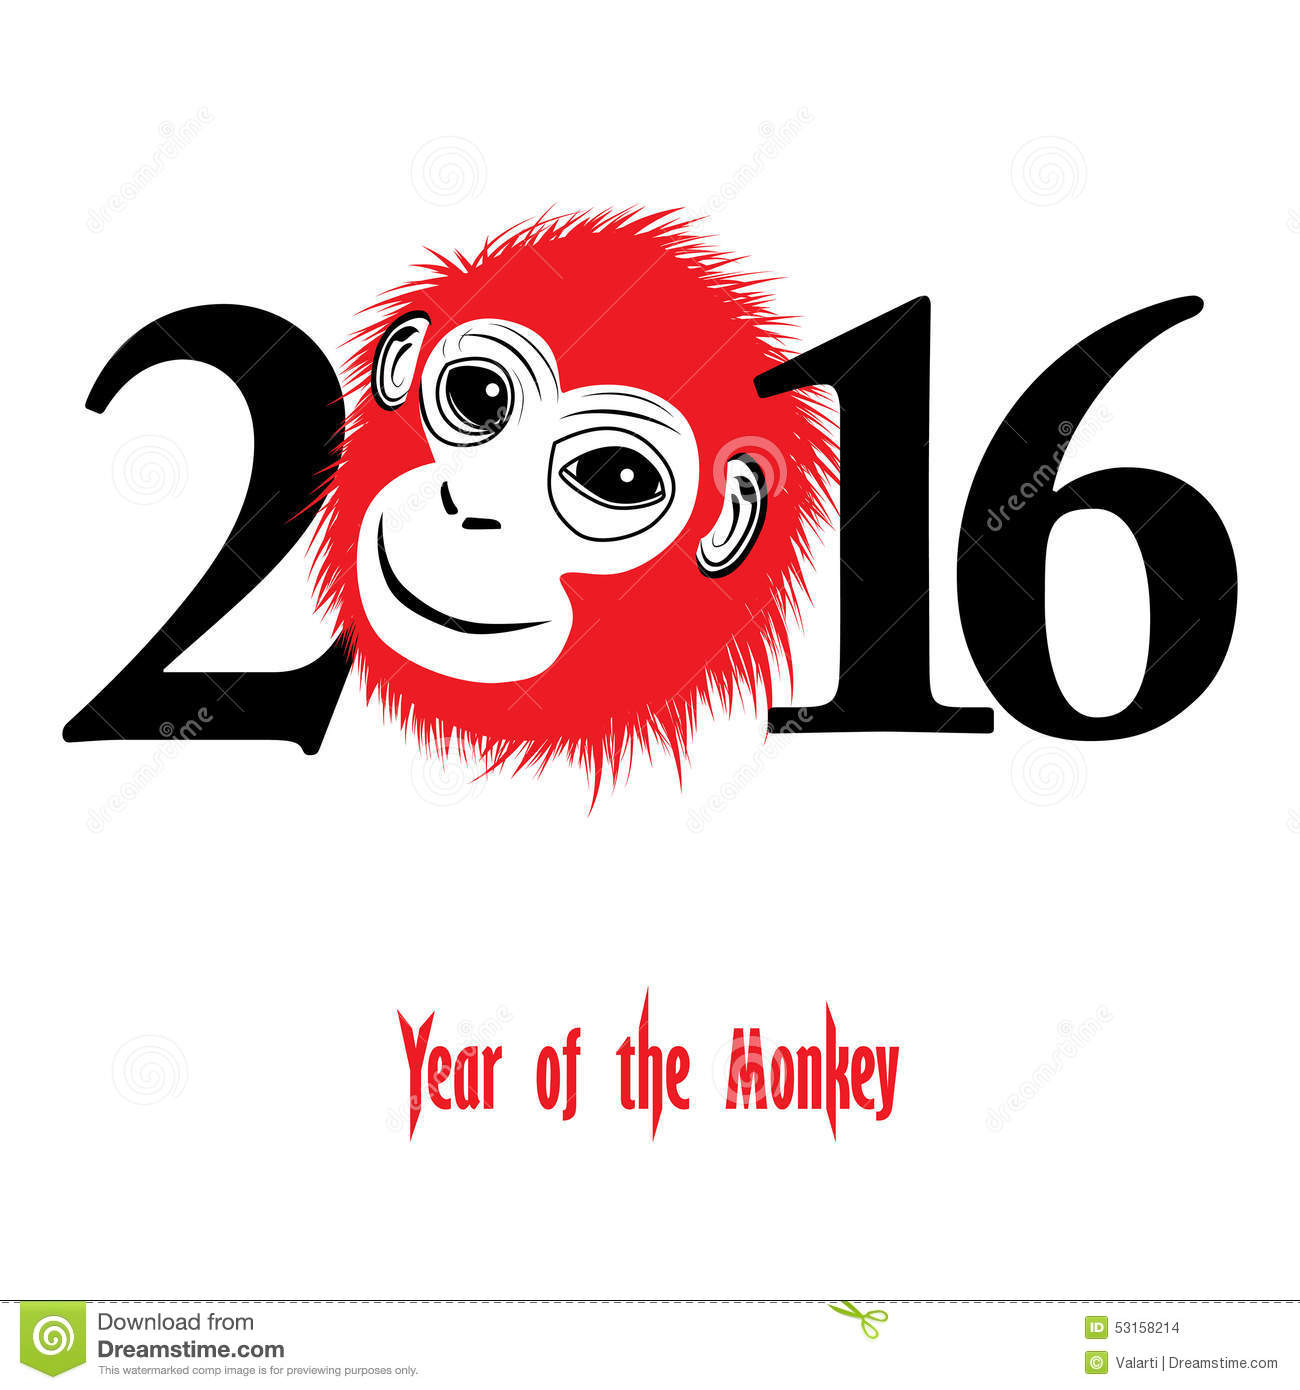 proxy - 2016: Year of the Monkey - Facts and Trivia